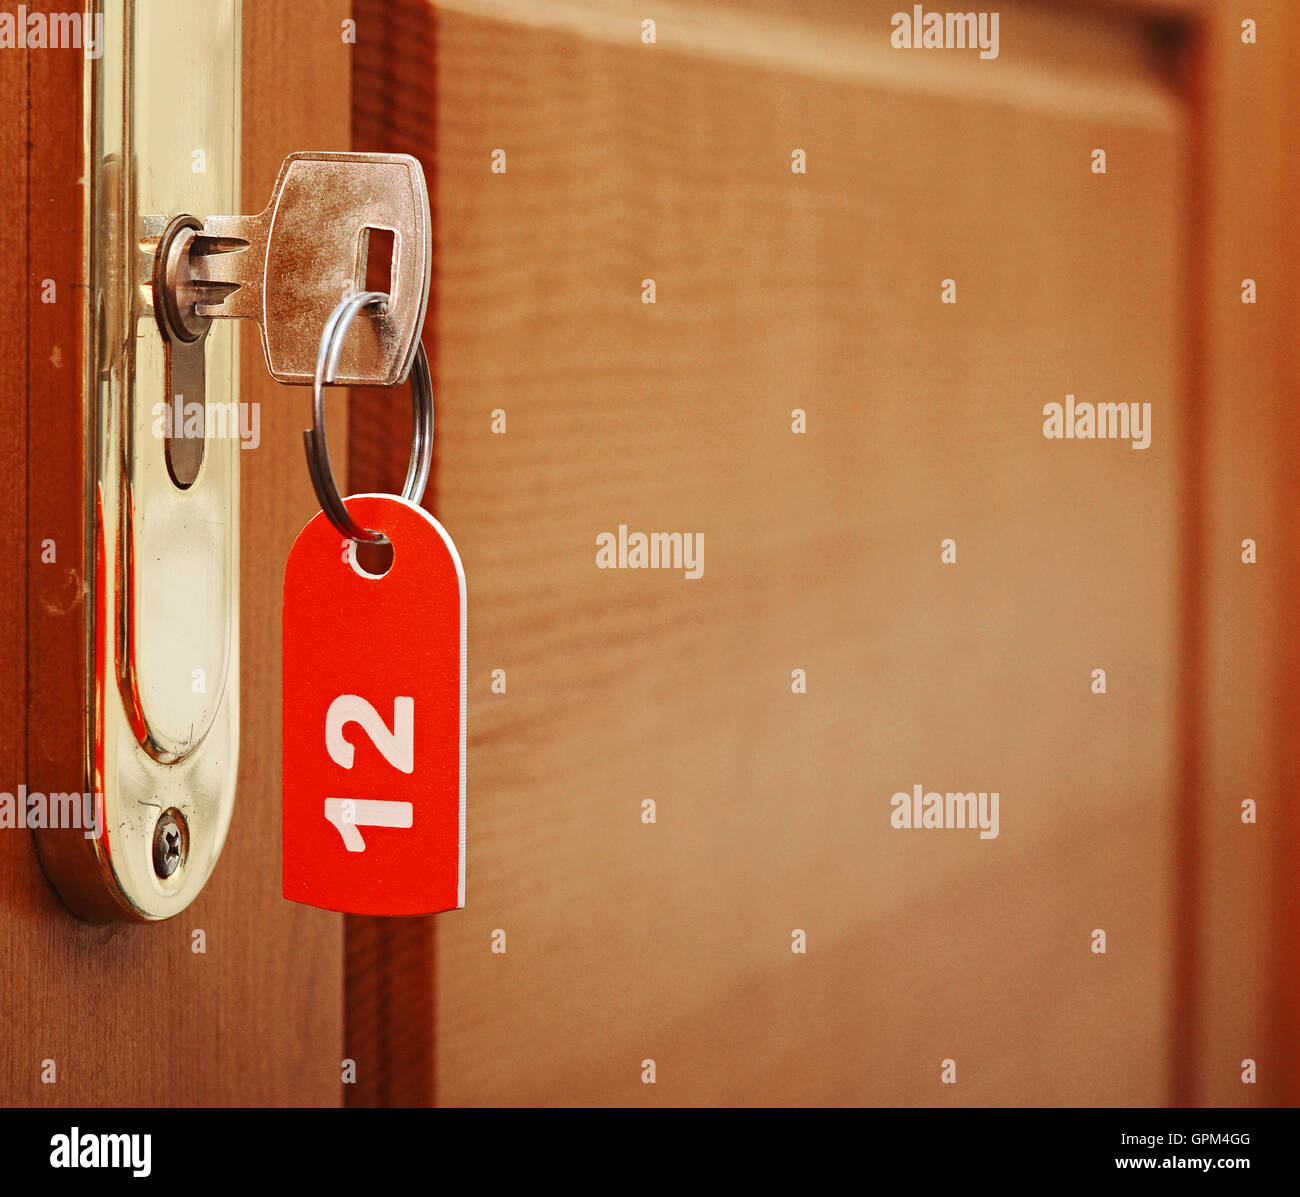 Door handles on wood wing of door and key in keyhole with number - Stock Image